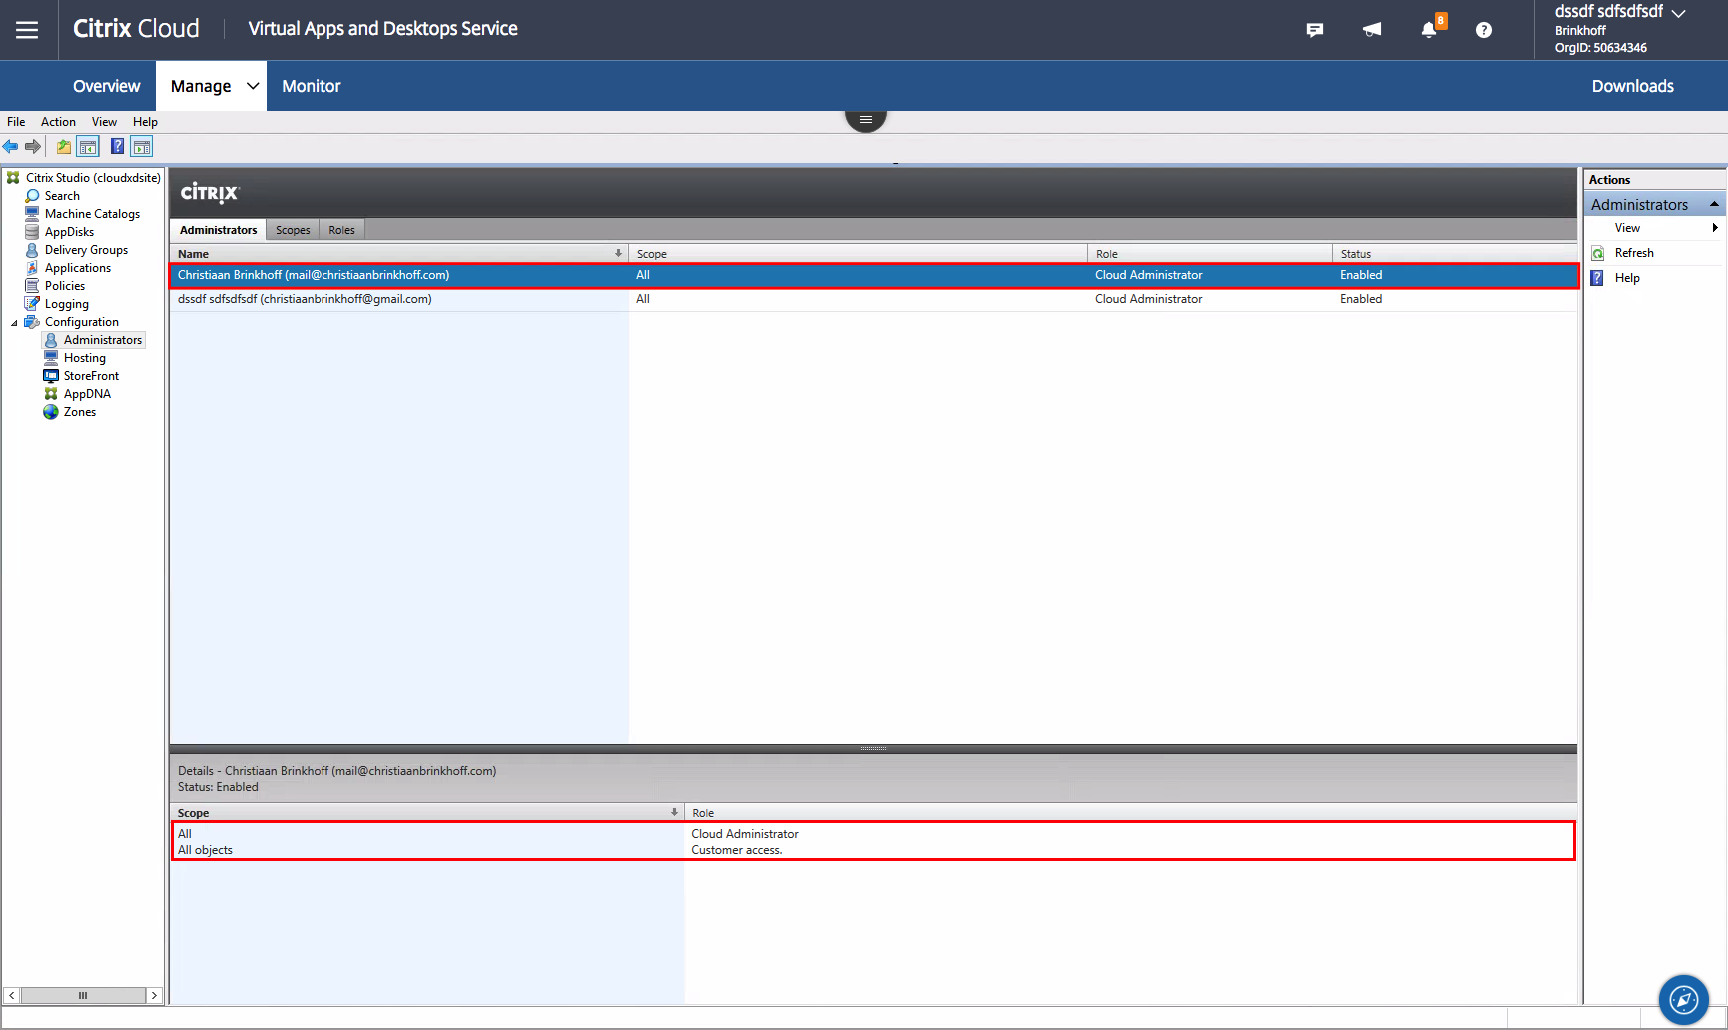 How to Delegate Control your Citrix Virtual Apps and